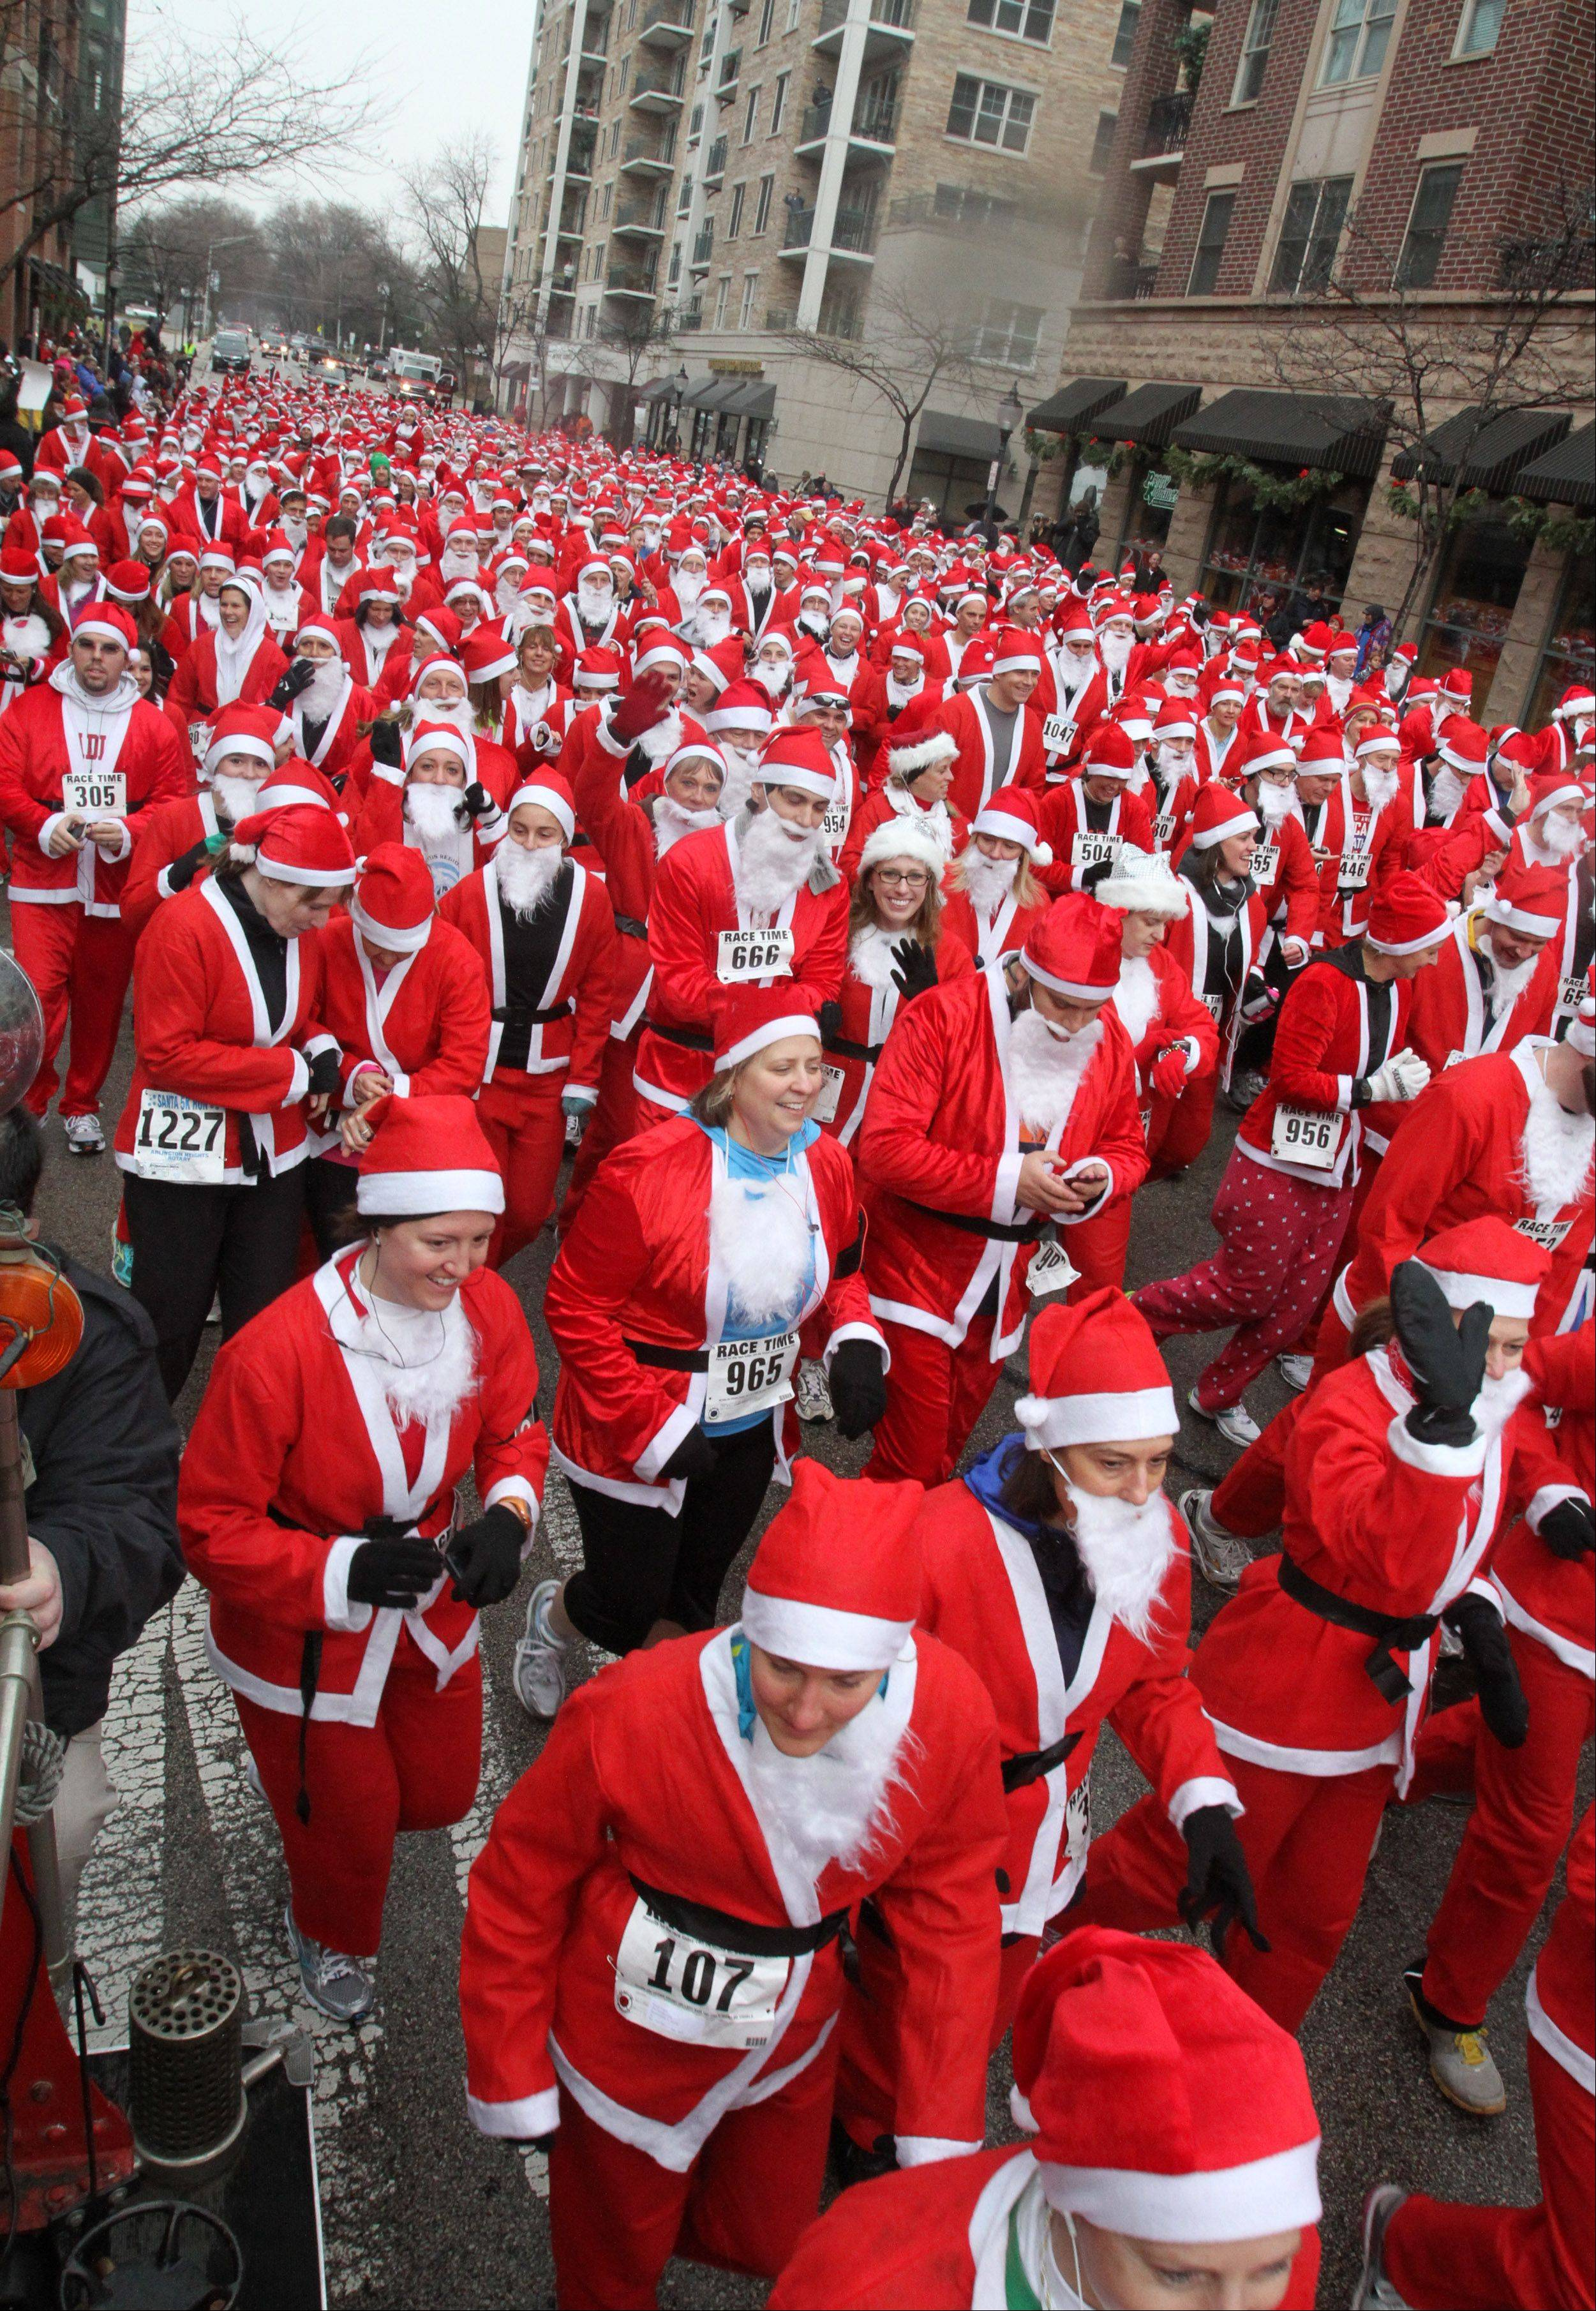 The Arlington Heights Rotary Club has 2,000 Santa suits available for this year�s Rotary Santa Run on Saturday, Dec. 3.